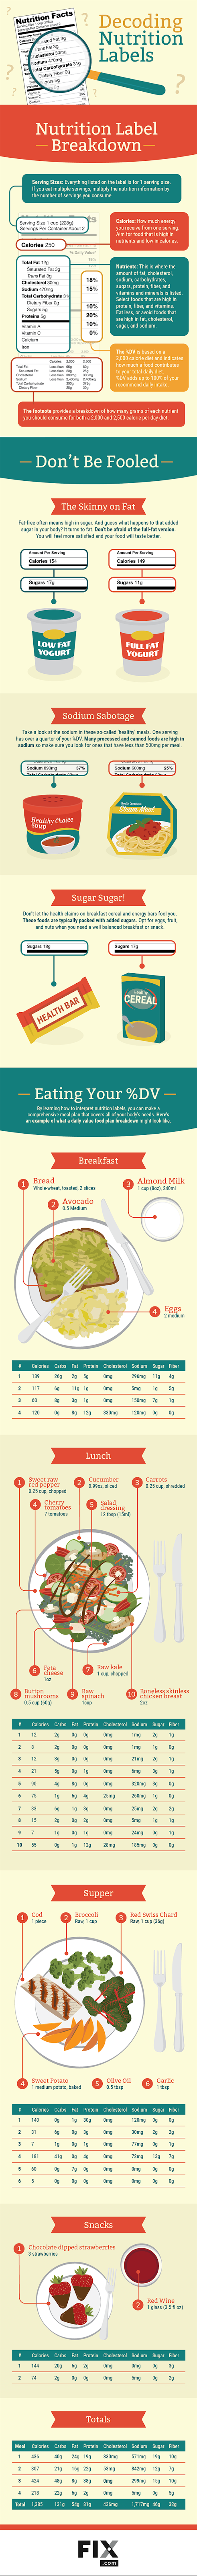 What to Look for in a Nutritional Label #Infographic